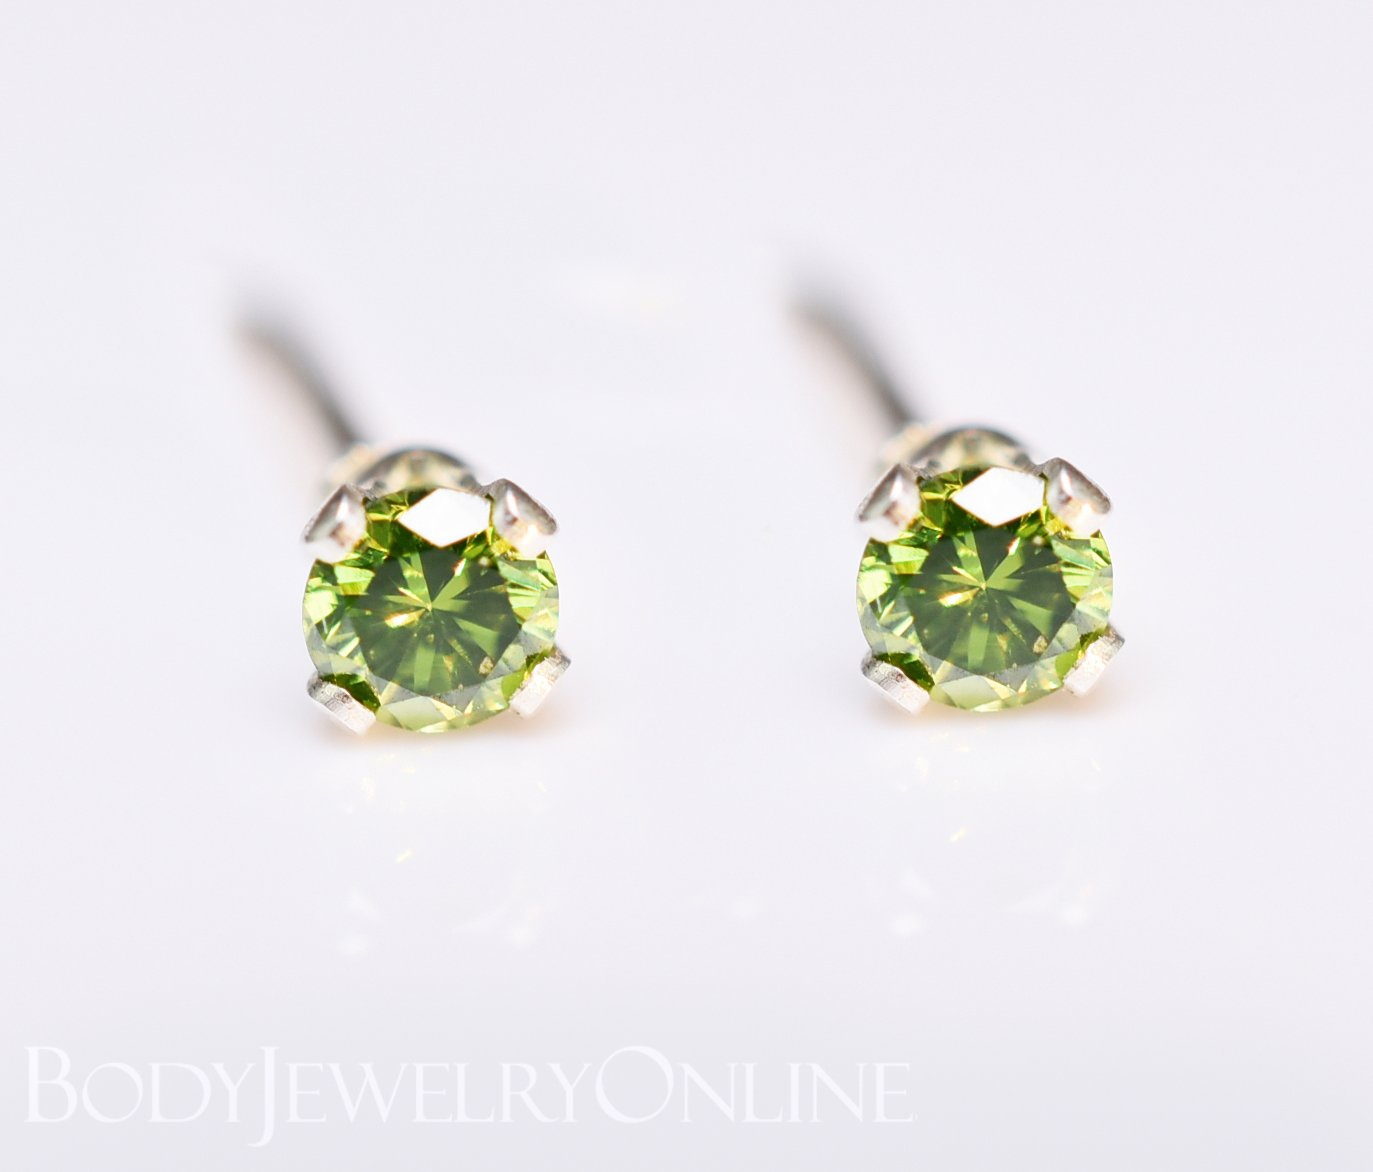 Genuine GREEN DIAMOND Earring Studs 2mm 0.08tcw Post 14k Solid Gold (Yellow, Rose or White), Platinum, Silver Lobe Cartilage Helix Tragus